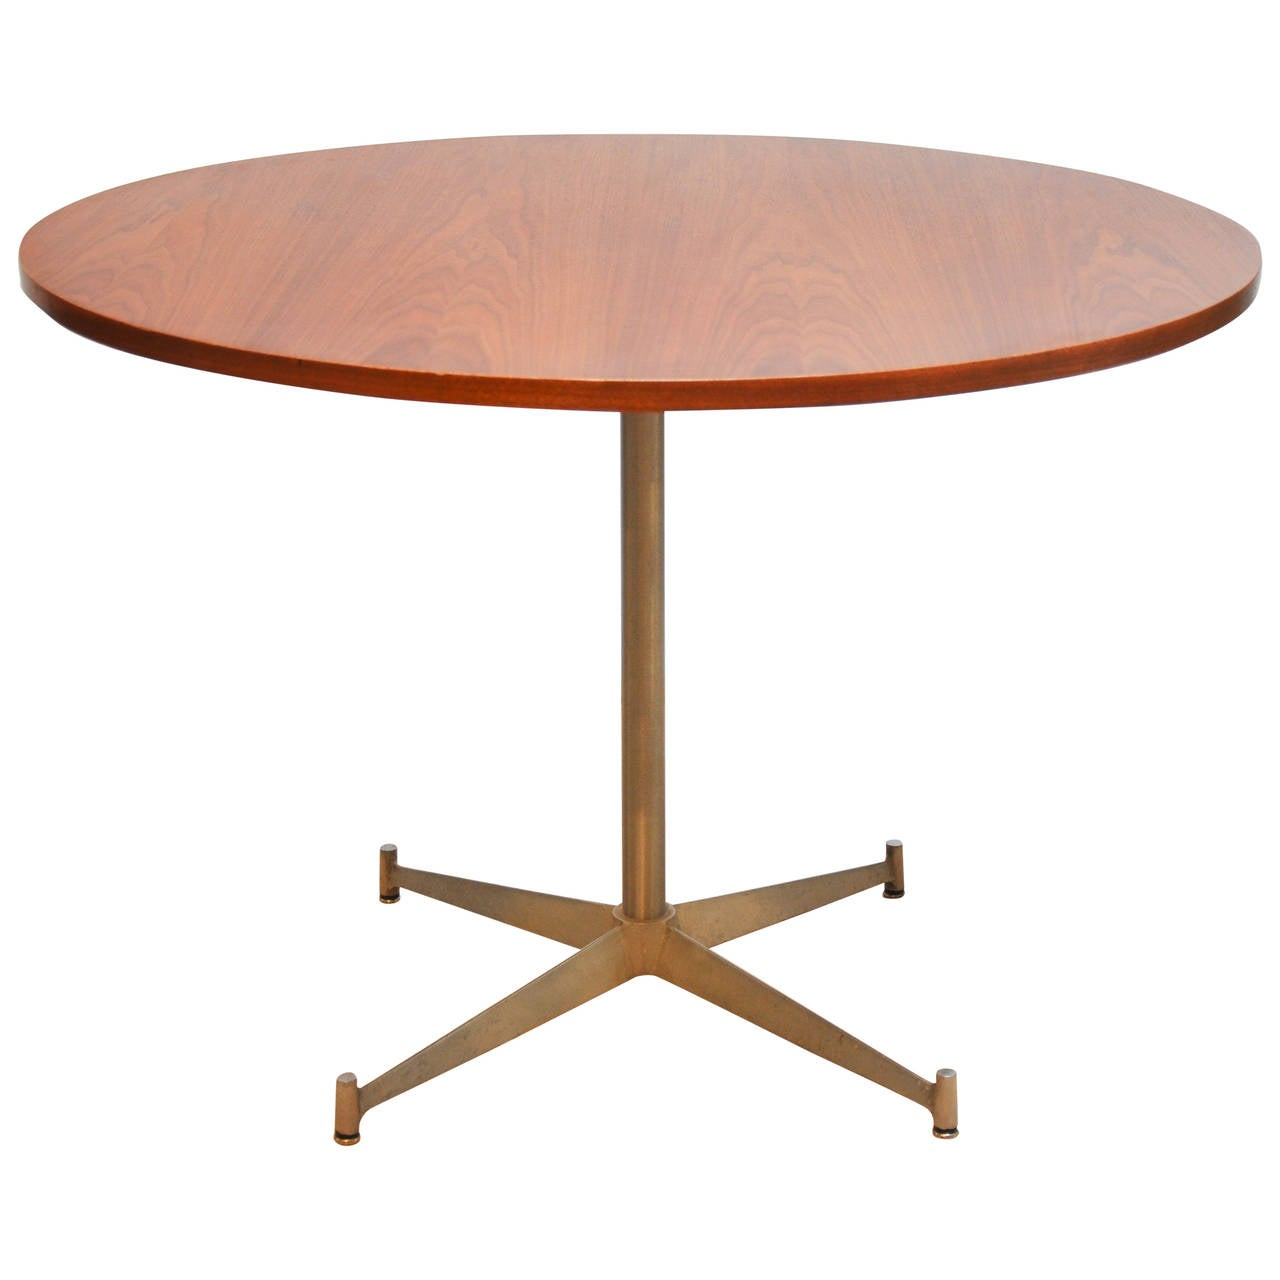 Paul McCobb Round Walnut And Alumninum Dining Table For Directional At